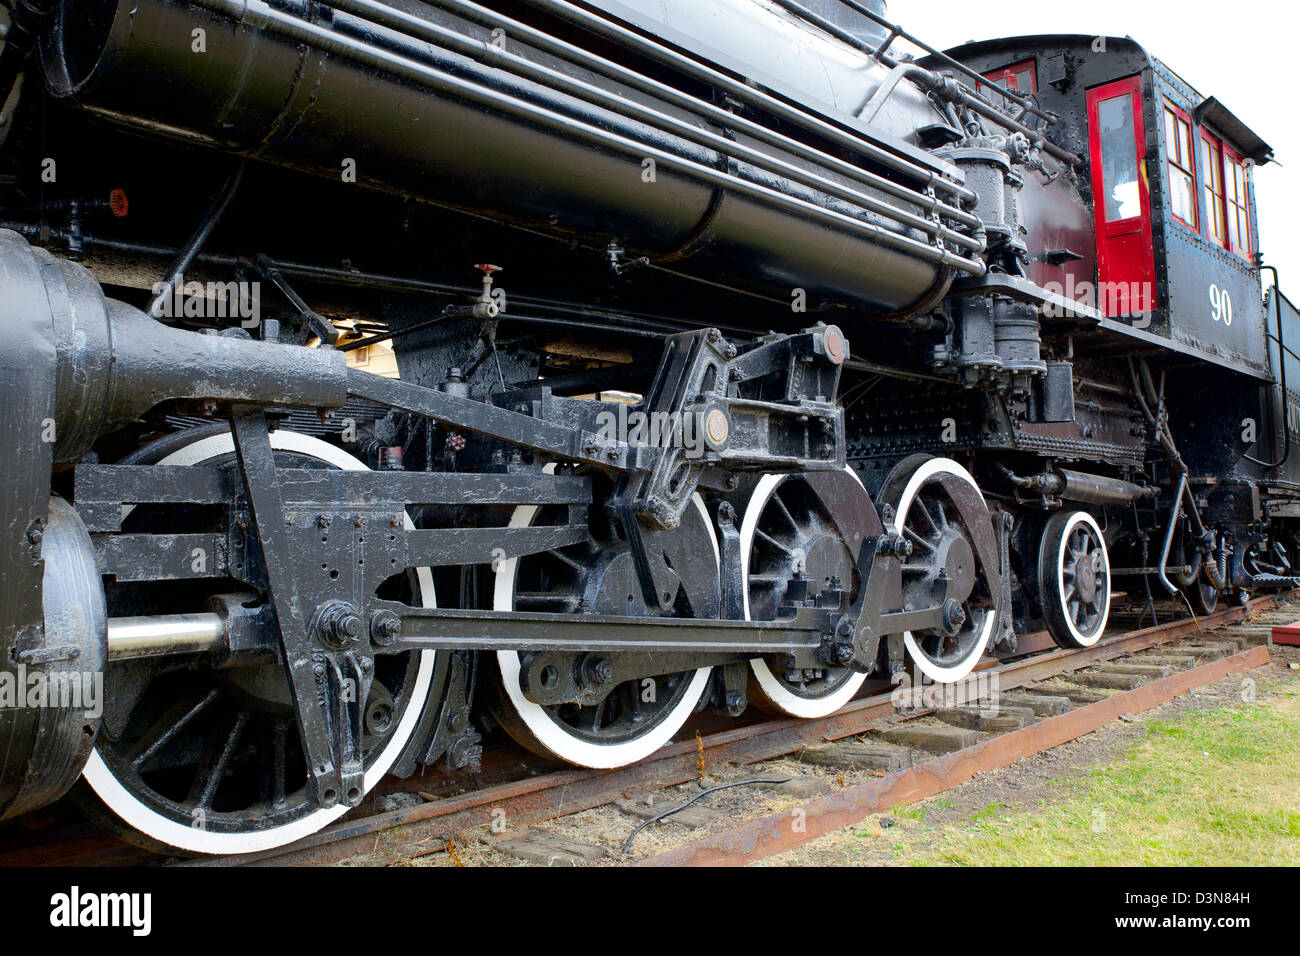 old black steam locomotive train with closeup of wheels. Black Bedroom Furniture Sets. Home Design Ideas